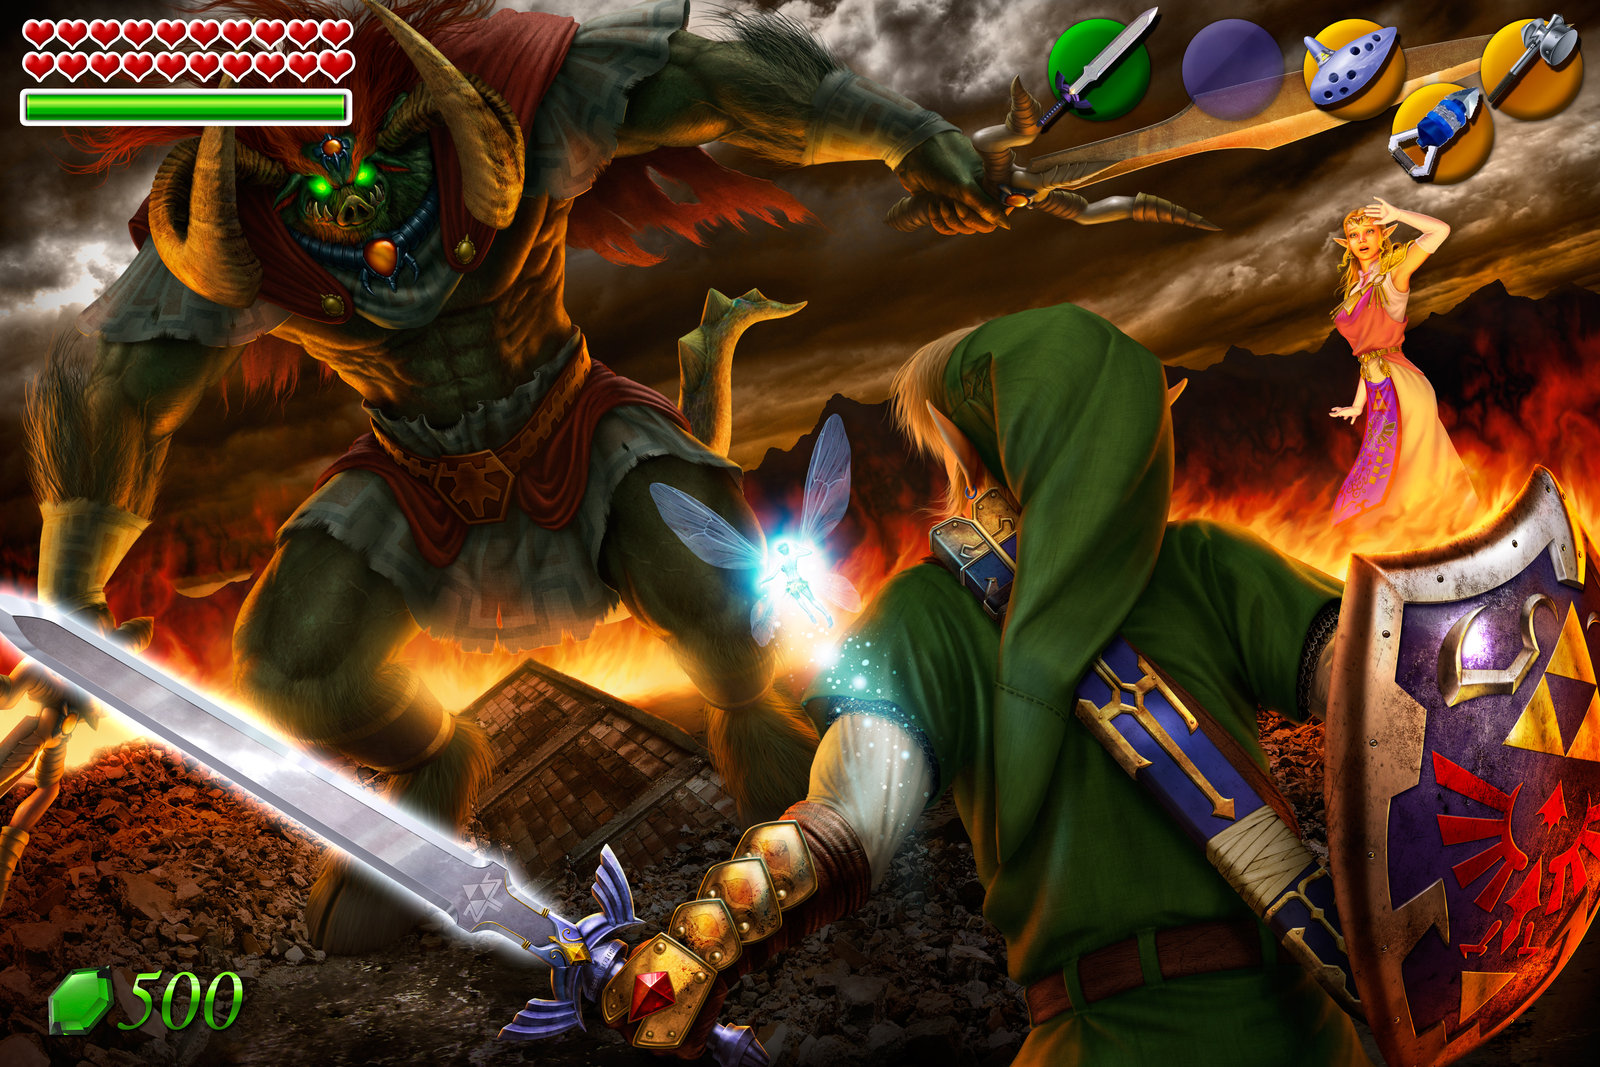 the legend of zelda: ocarina of time wallpaper and background image